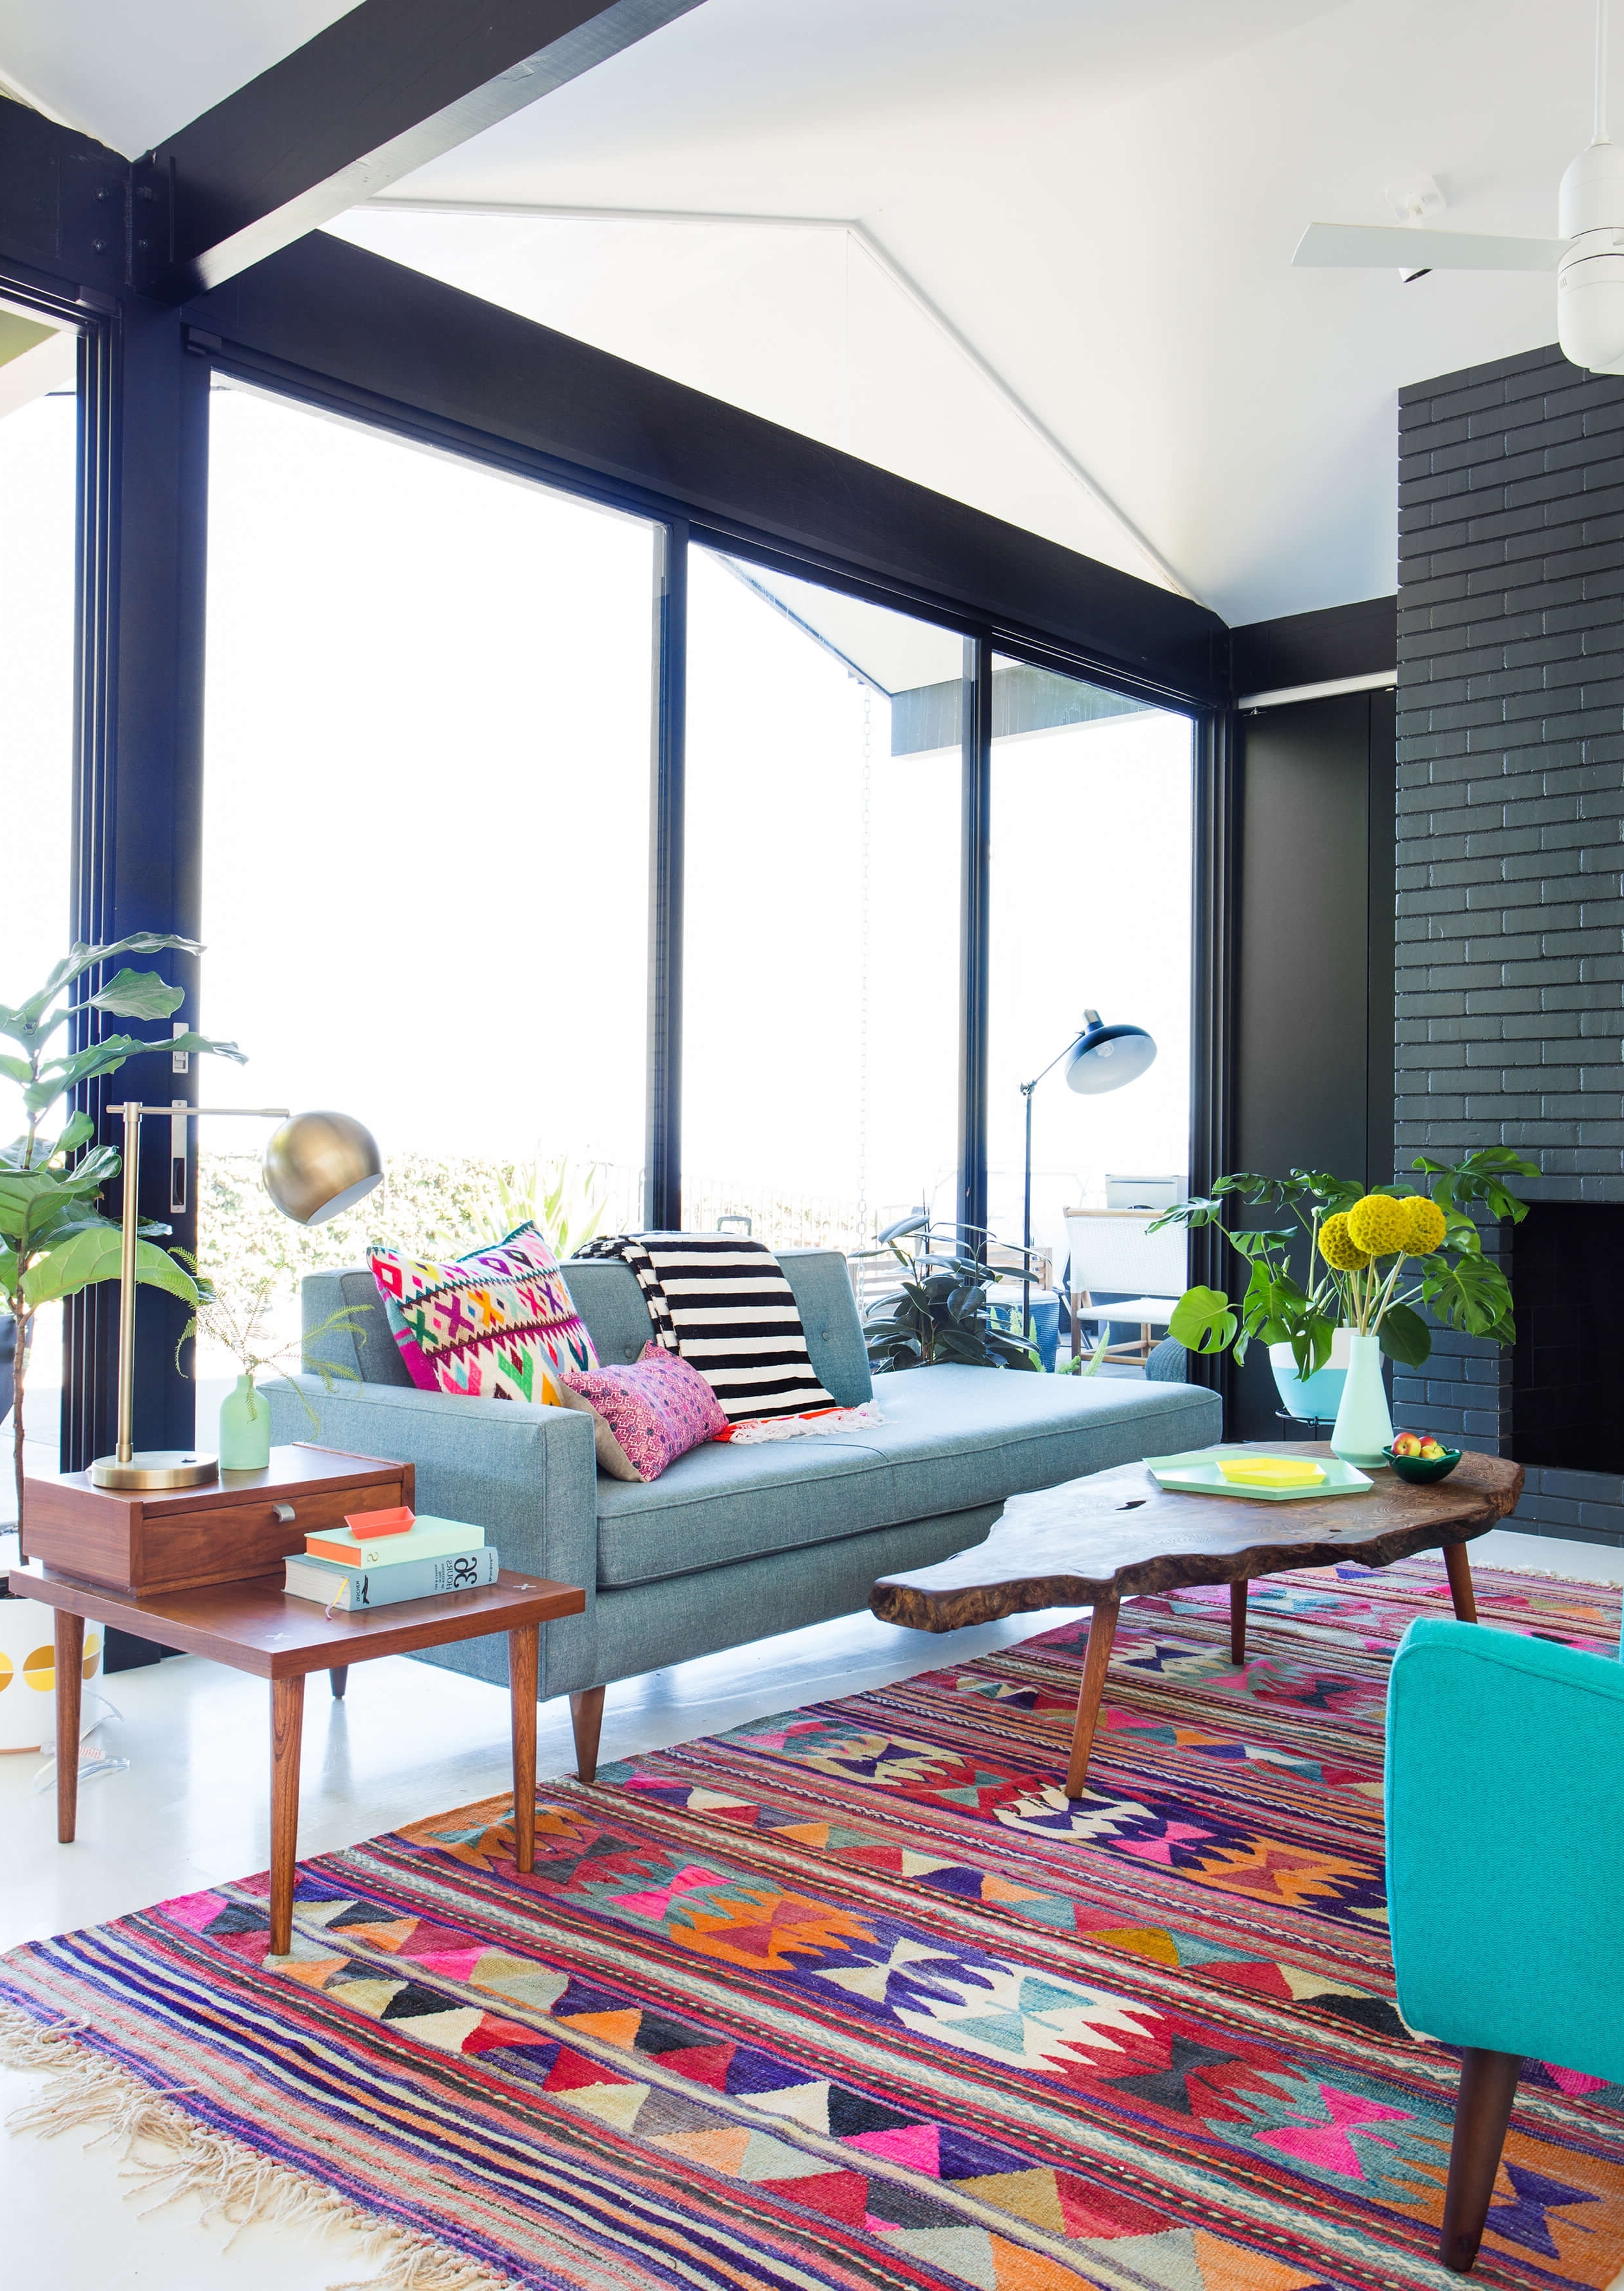 Latest Power Couples: Sofas And Coffee Tables – Emily Henderson With Regard To Wyatt 7 Piece Dining Sets With Celler Teal Chairs (View 11 of 25)